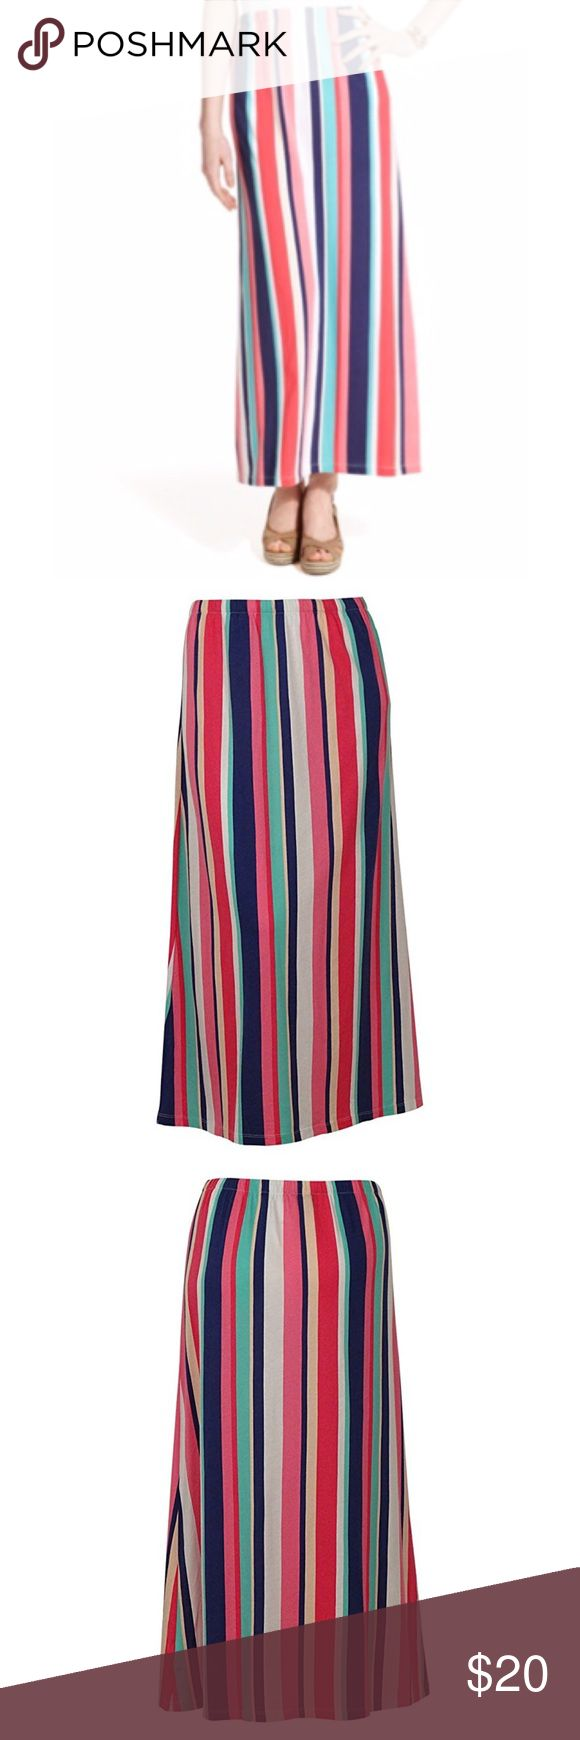 TOMMY HILFIGER Multi Striped Maxi Skirt TOMMY HILFIGER Multi Striped Maxi Skirt.  Multi colored striped.  Long maxi.  Elastic waistband.  Lightweight.  Dimensions: 16 x 1 x 12 inches Tommy Hilfiger Skirts Maxi